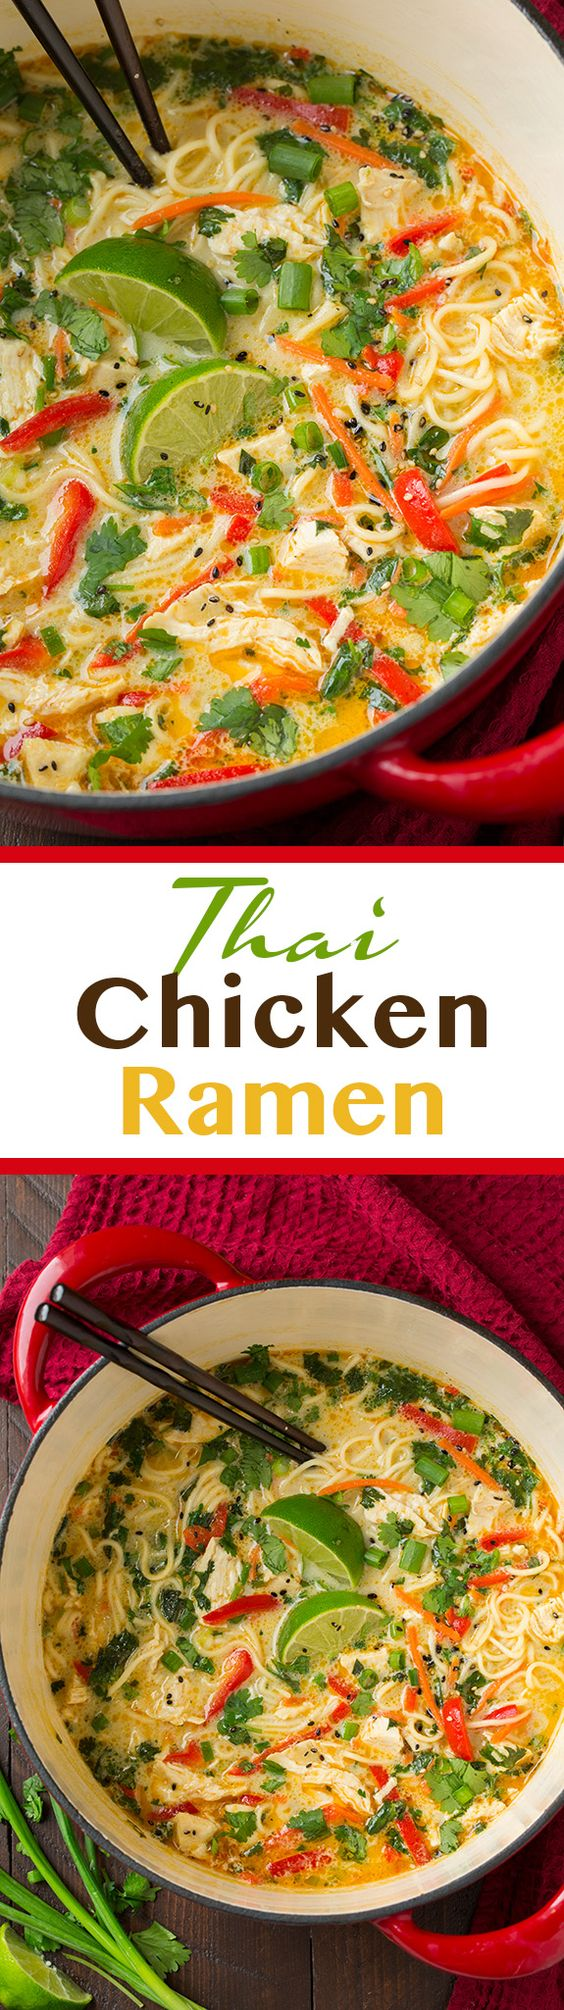 Thai Chicken Ramen - this is AMAZING! Easy to make and seriously so good! try with zoodles